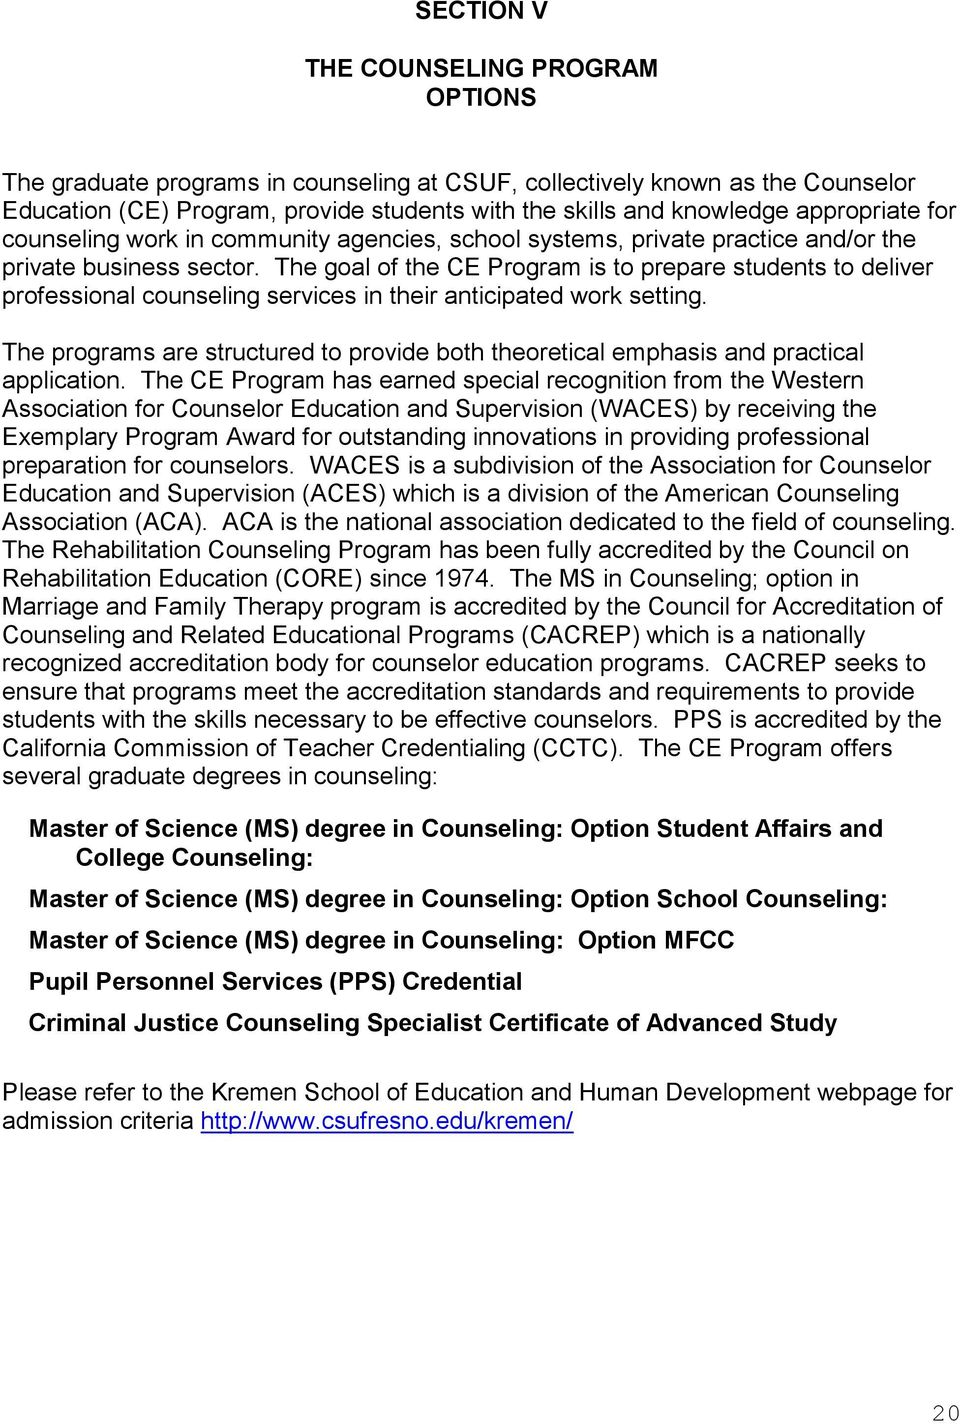 Counselor Education Program Department Of Counselor Education And